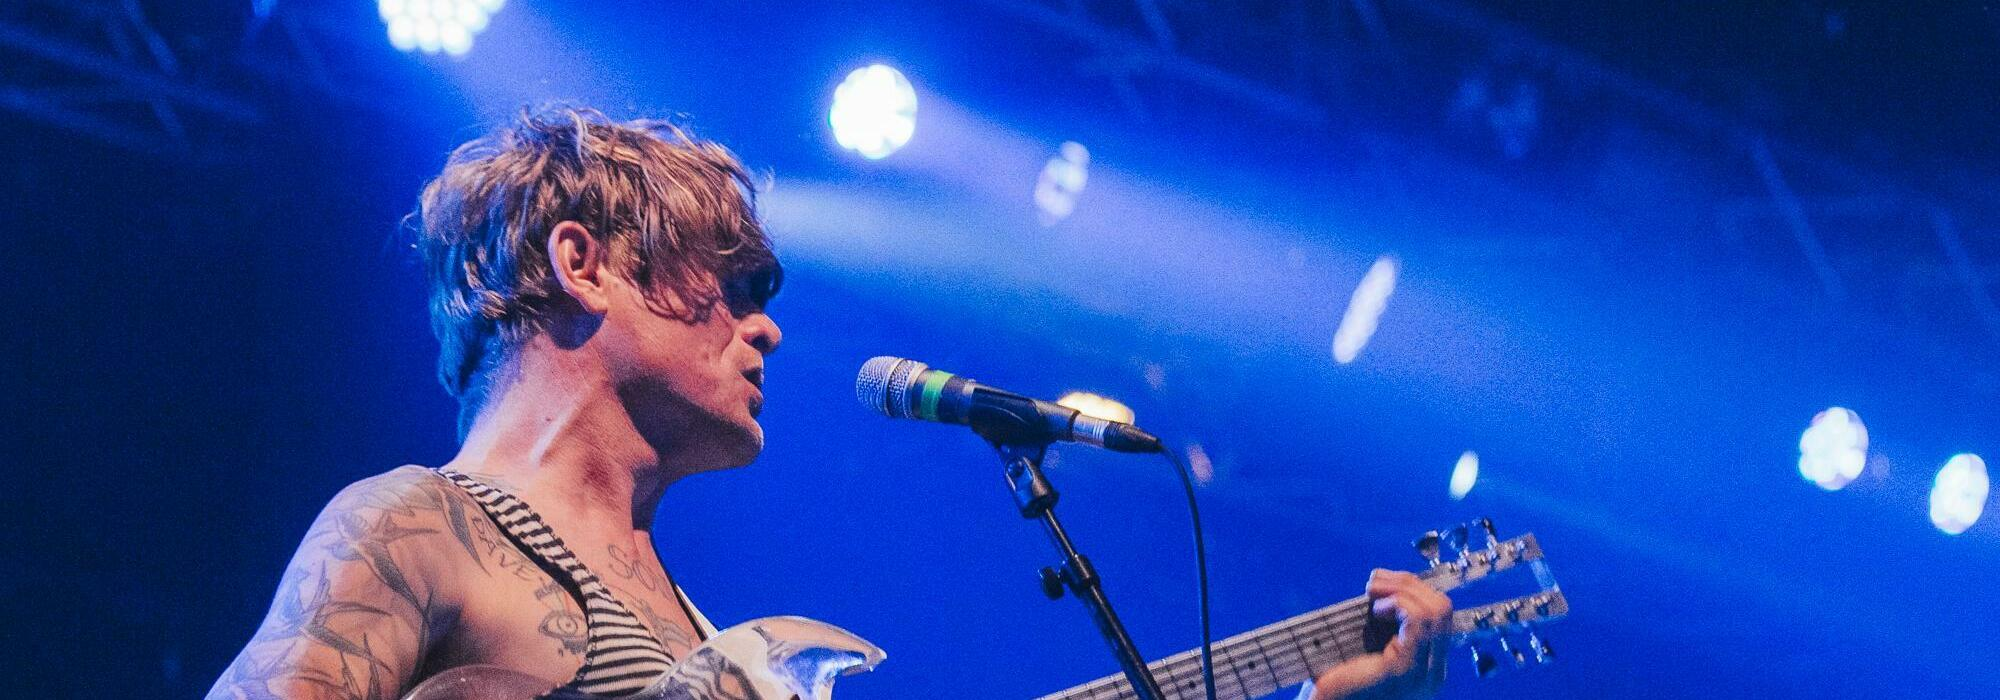 A Thee Oh Sees live event